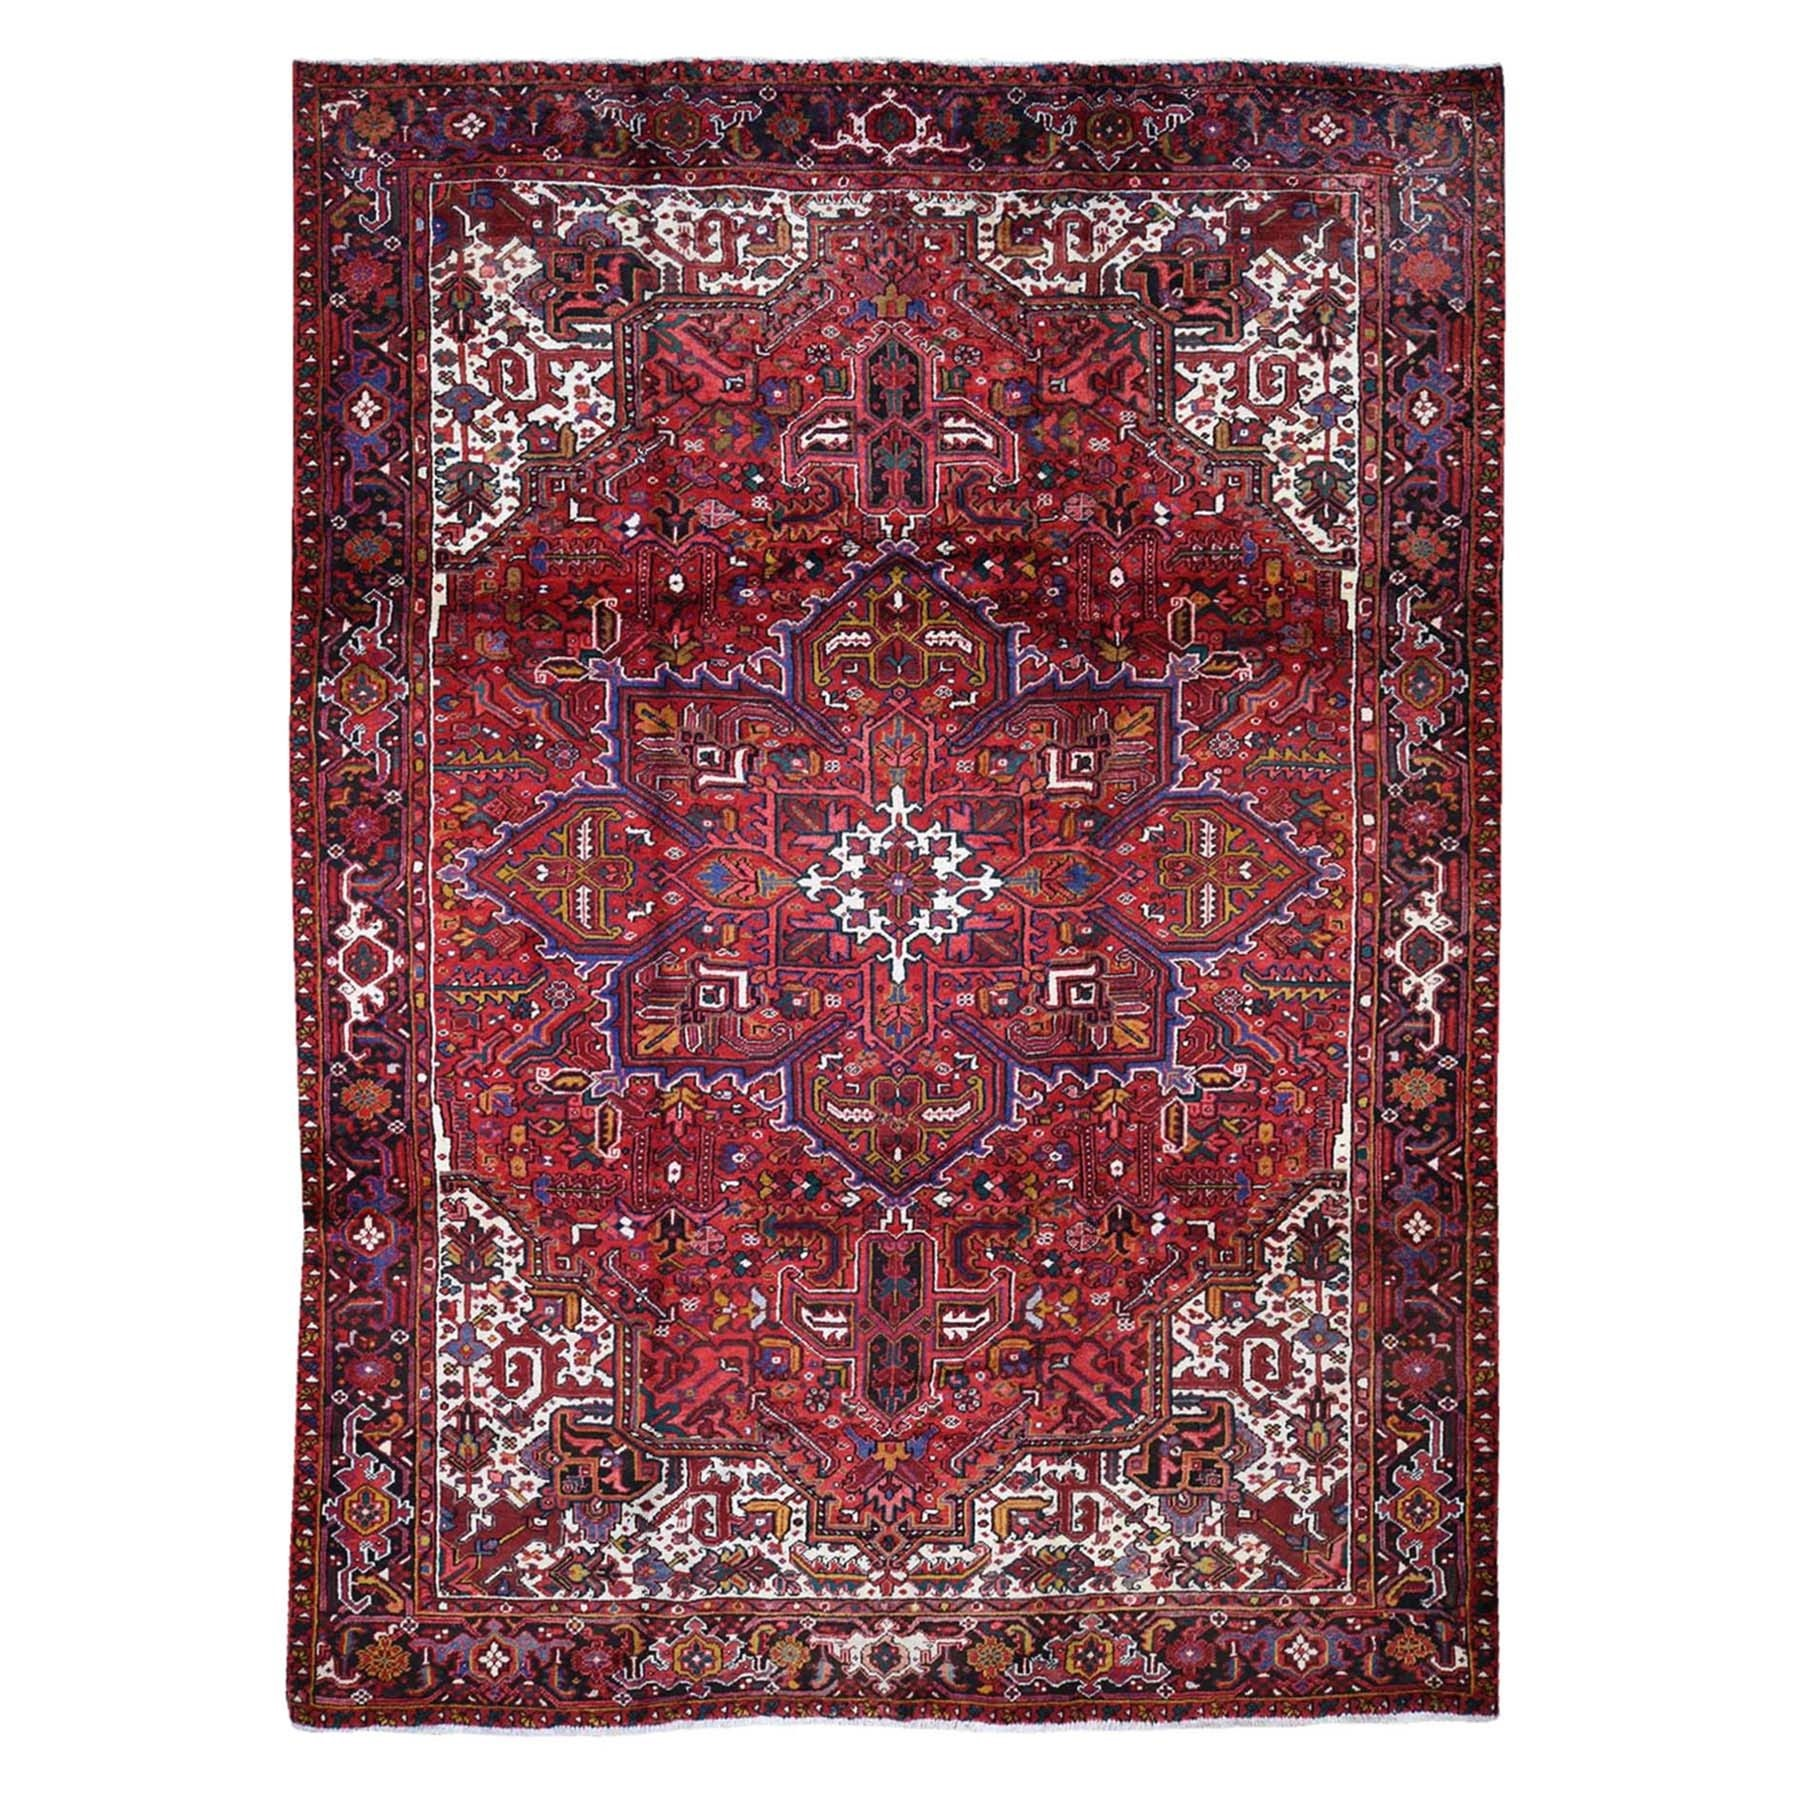 """9'3""""x12'4"""" Red Semi Antique Heriz Good Condition Pure Wool Hand-Knotted Oriental Rug 45191"""